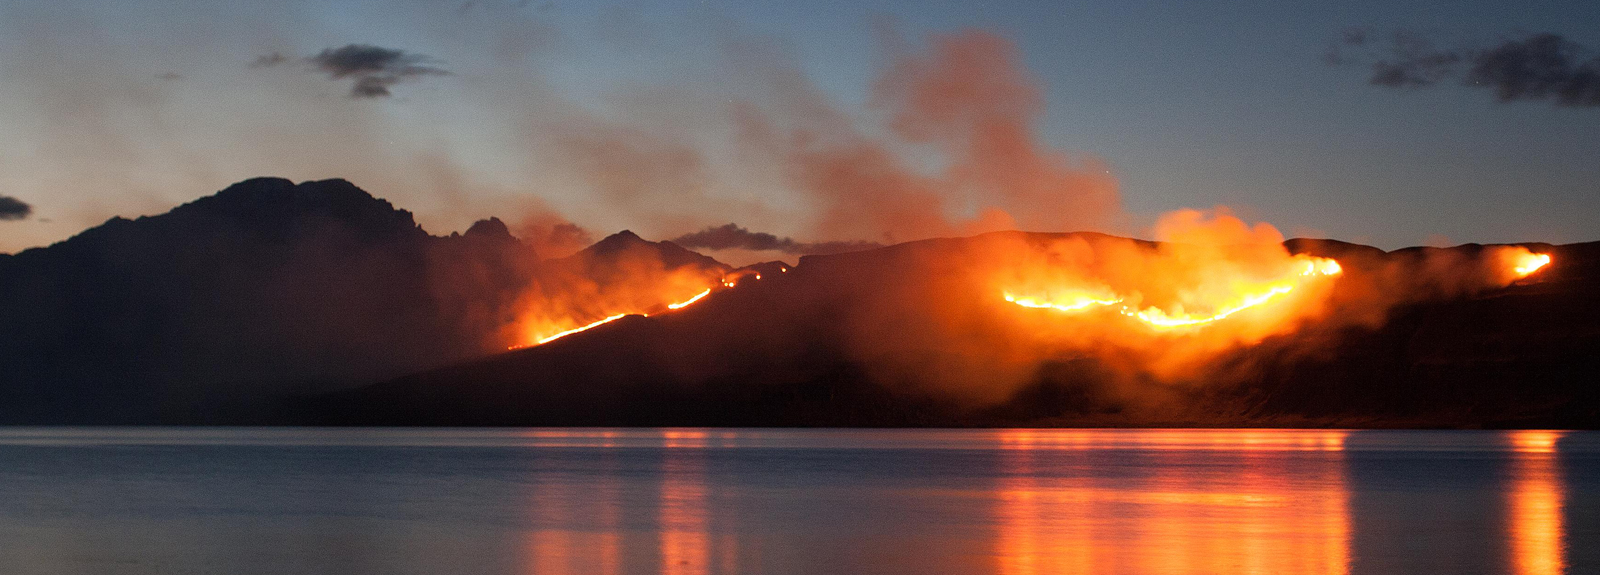 SFRS in countryside appeal as high pressure raises risk of wildfires